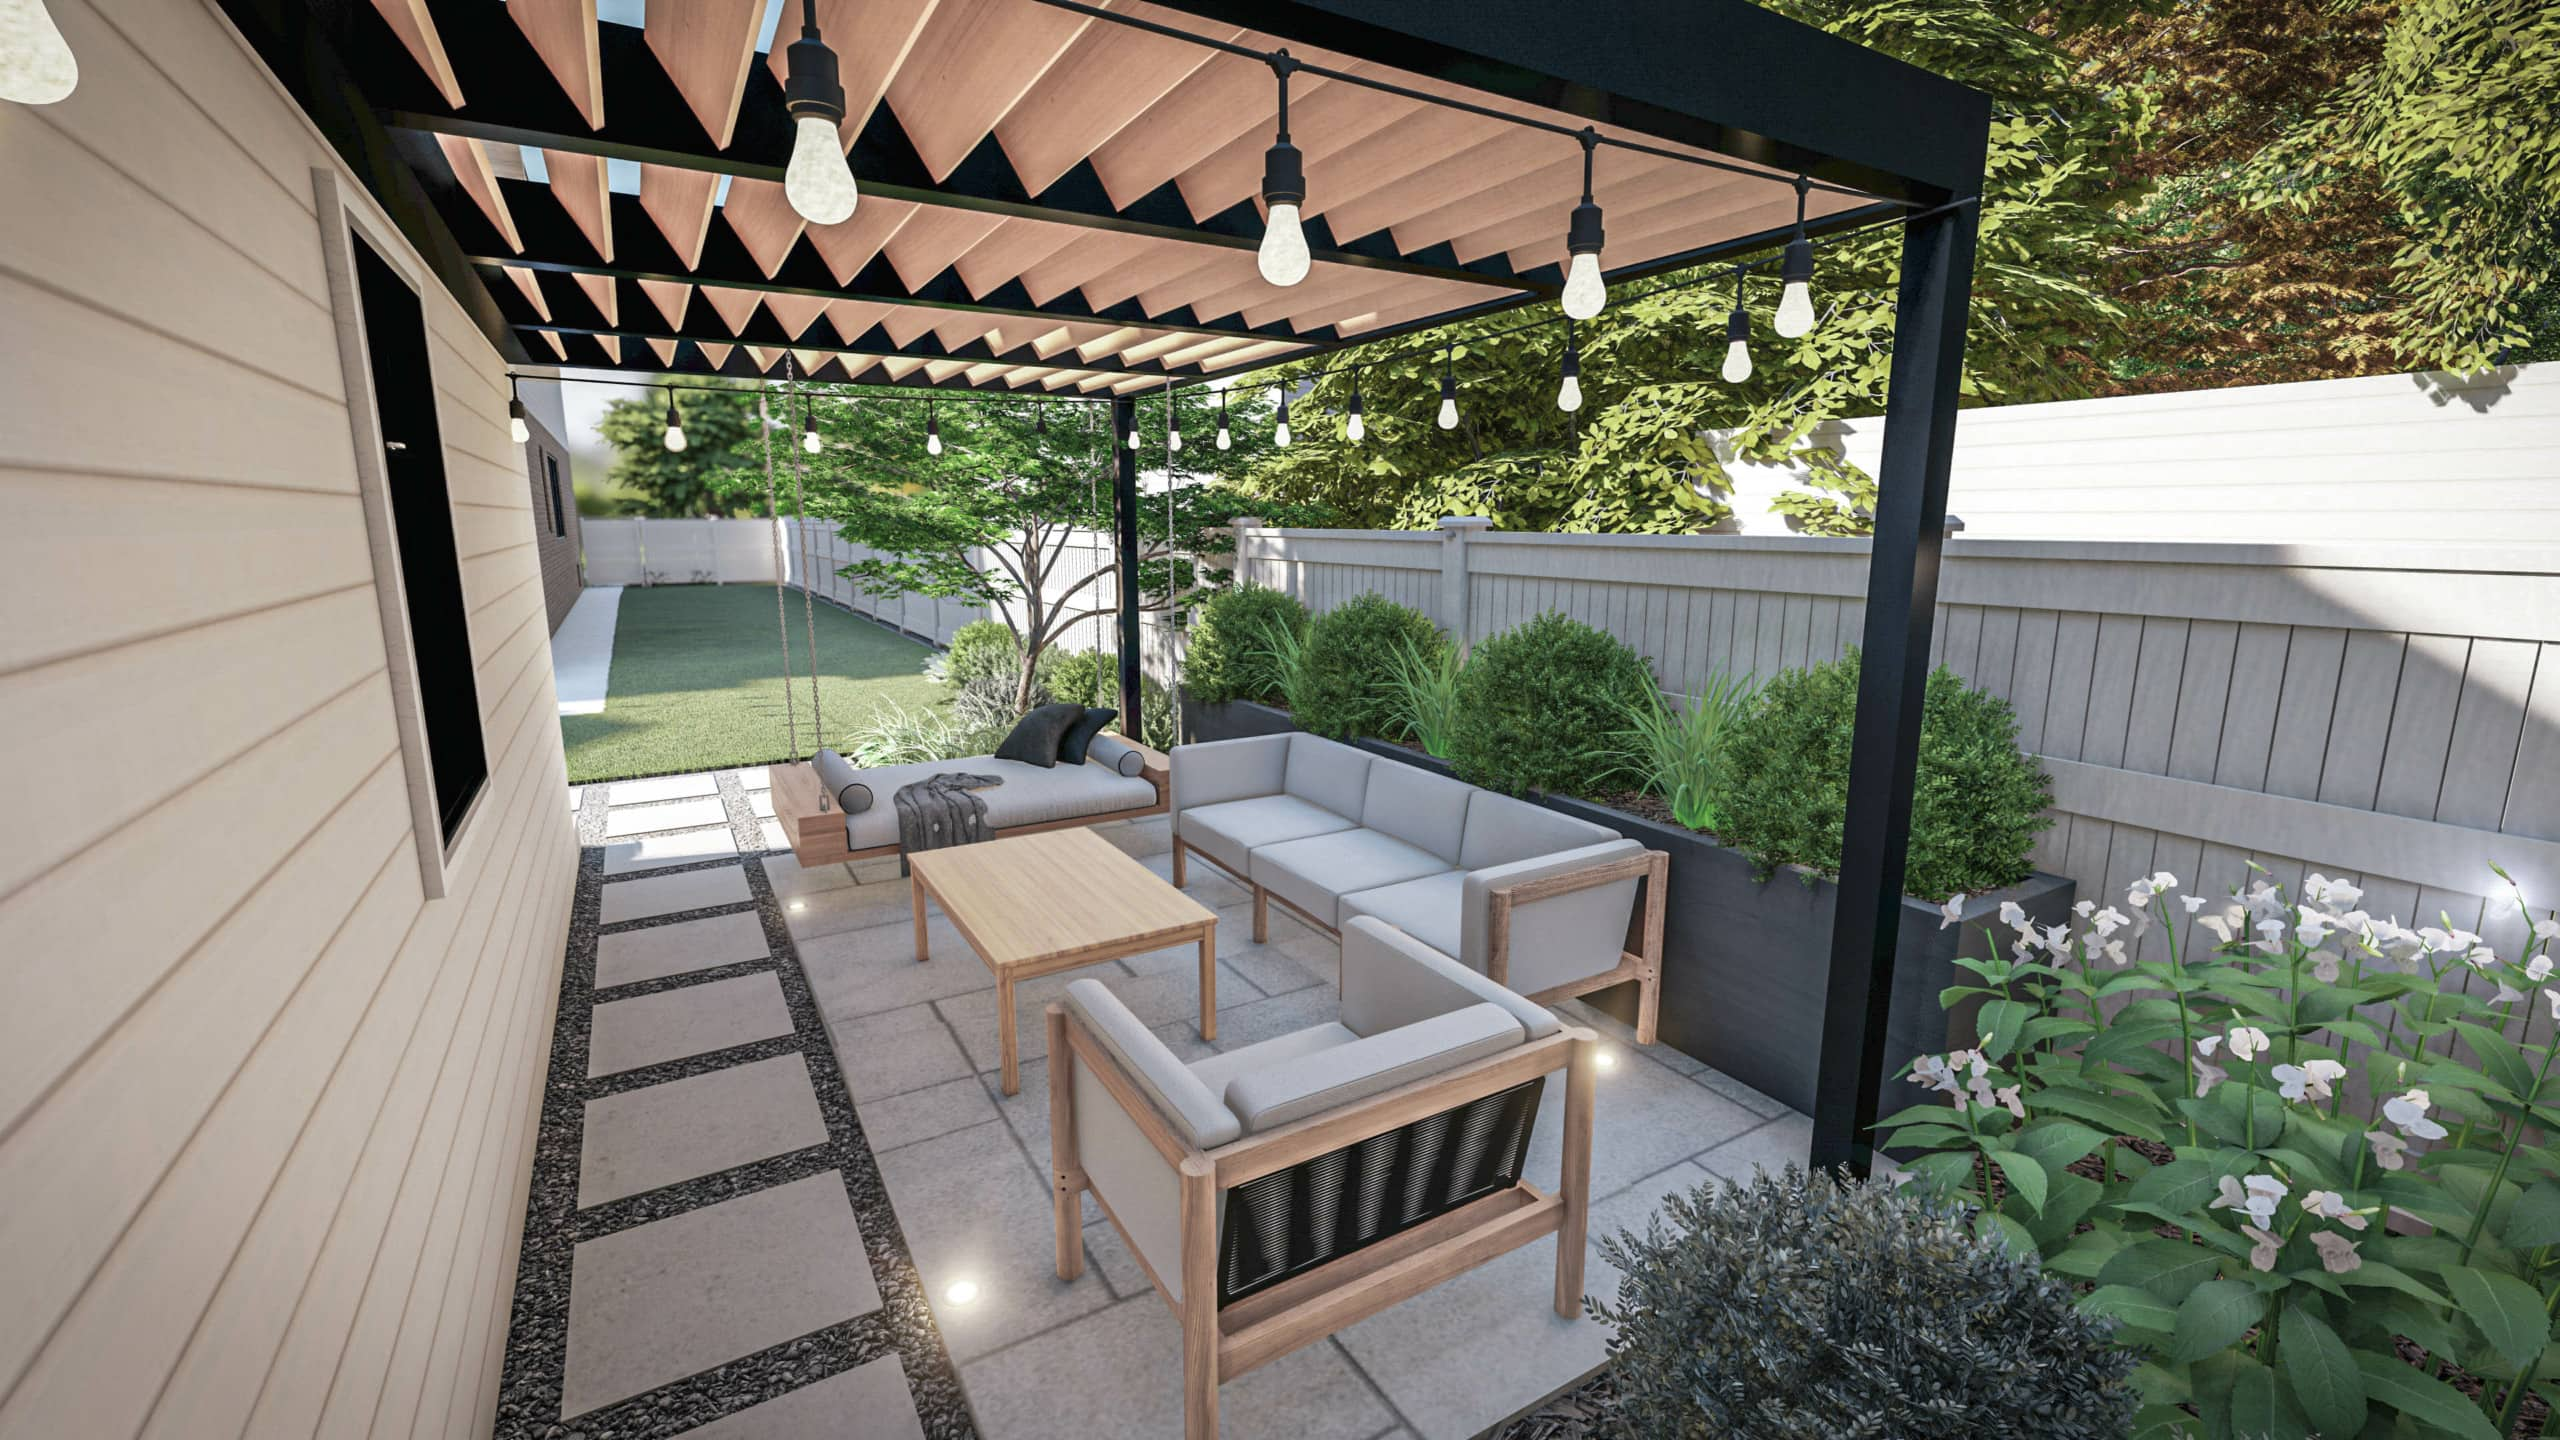 Our Yardzen backyard design plan